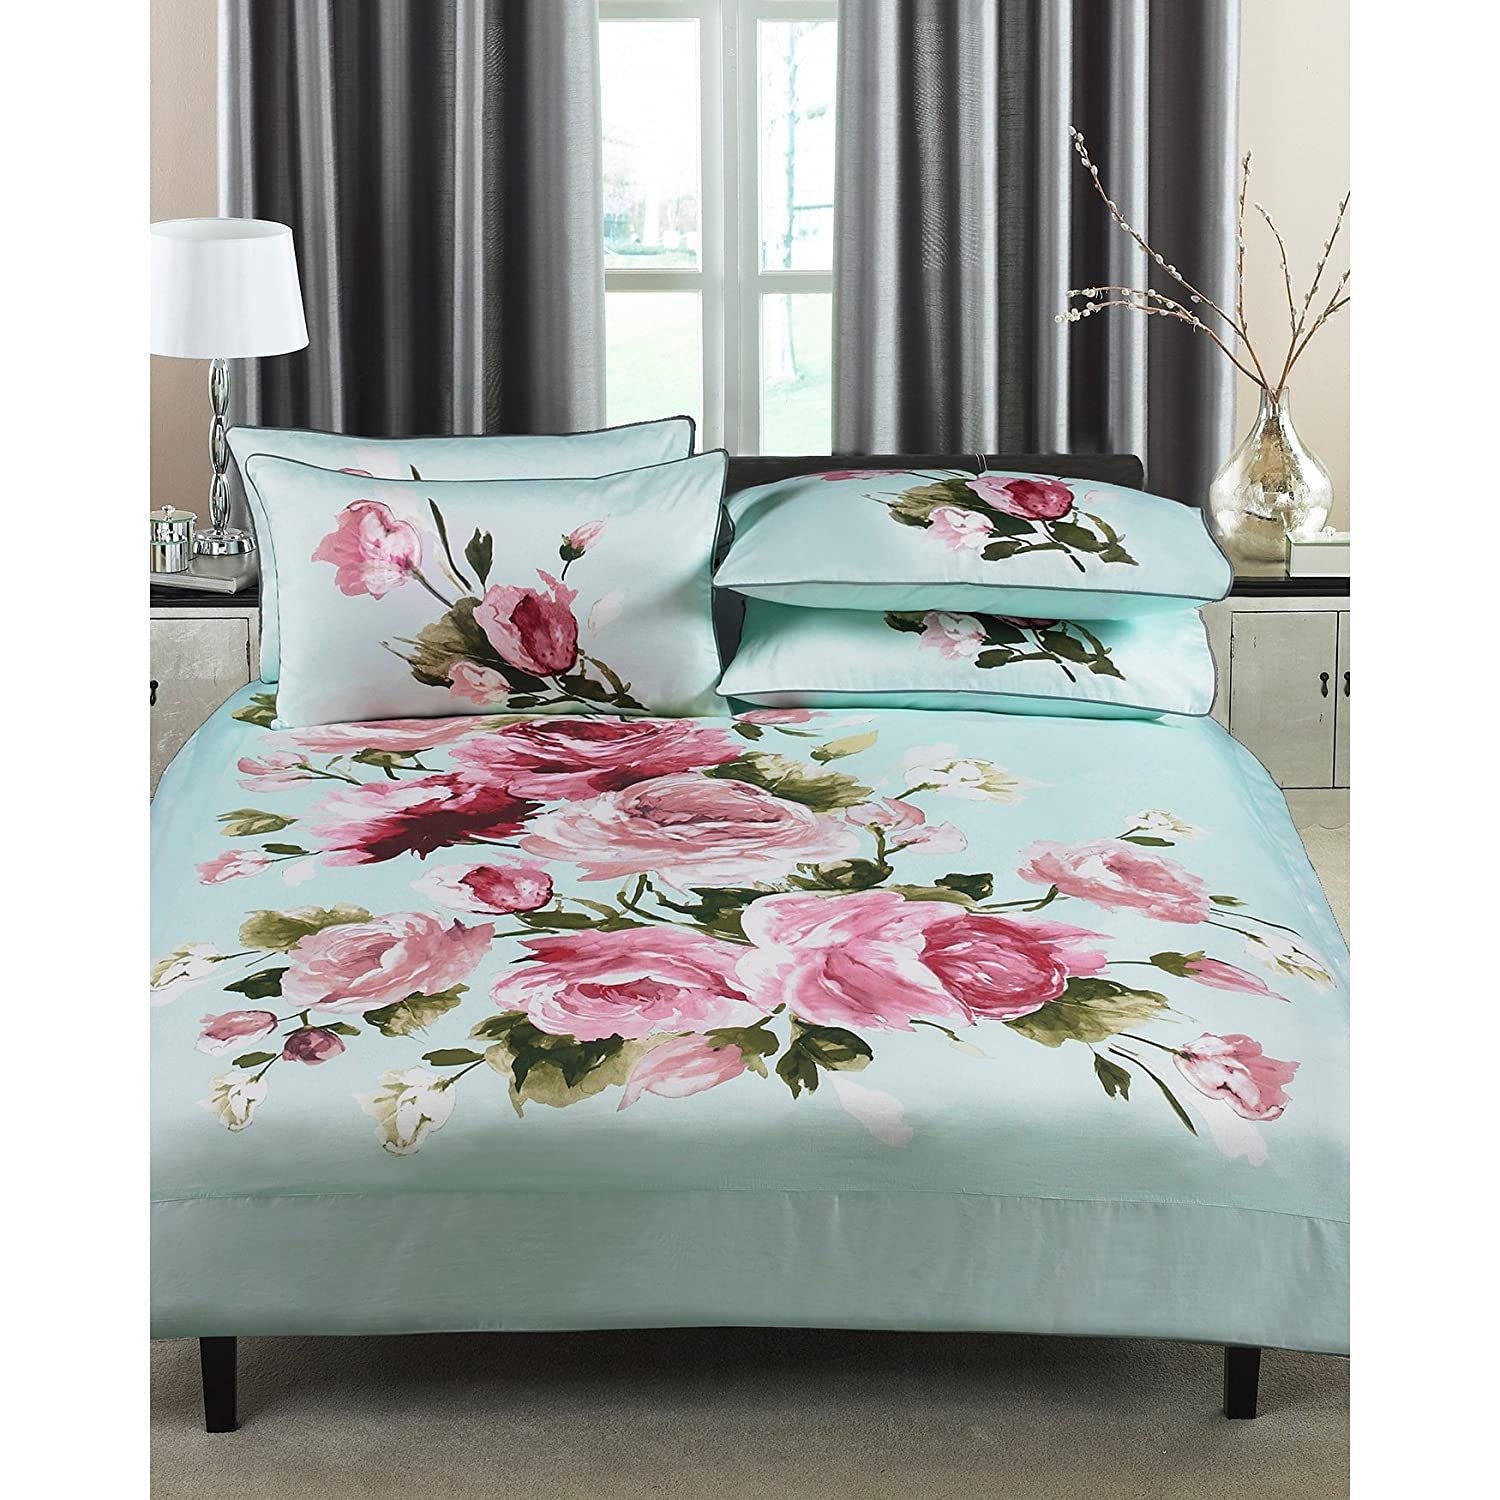 detail product burgundy main brushed cover cotton review duvet matalan from covers this is